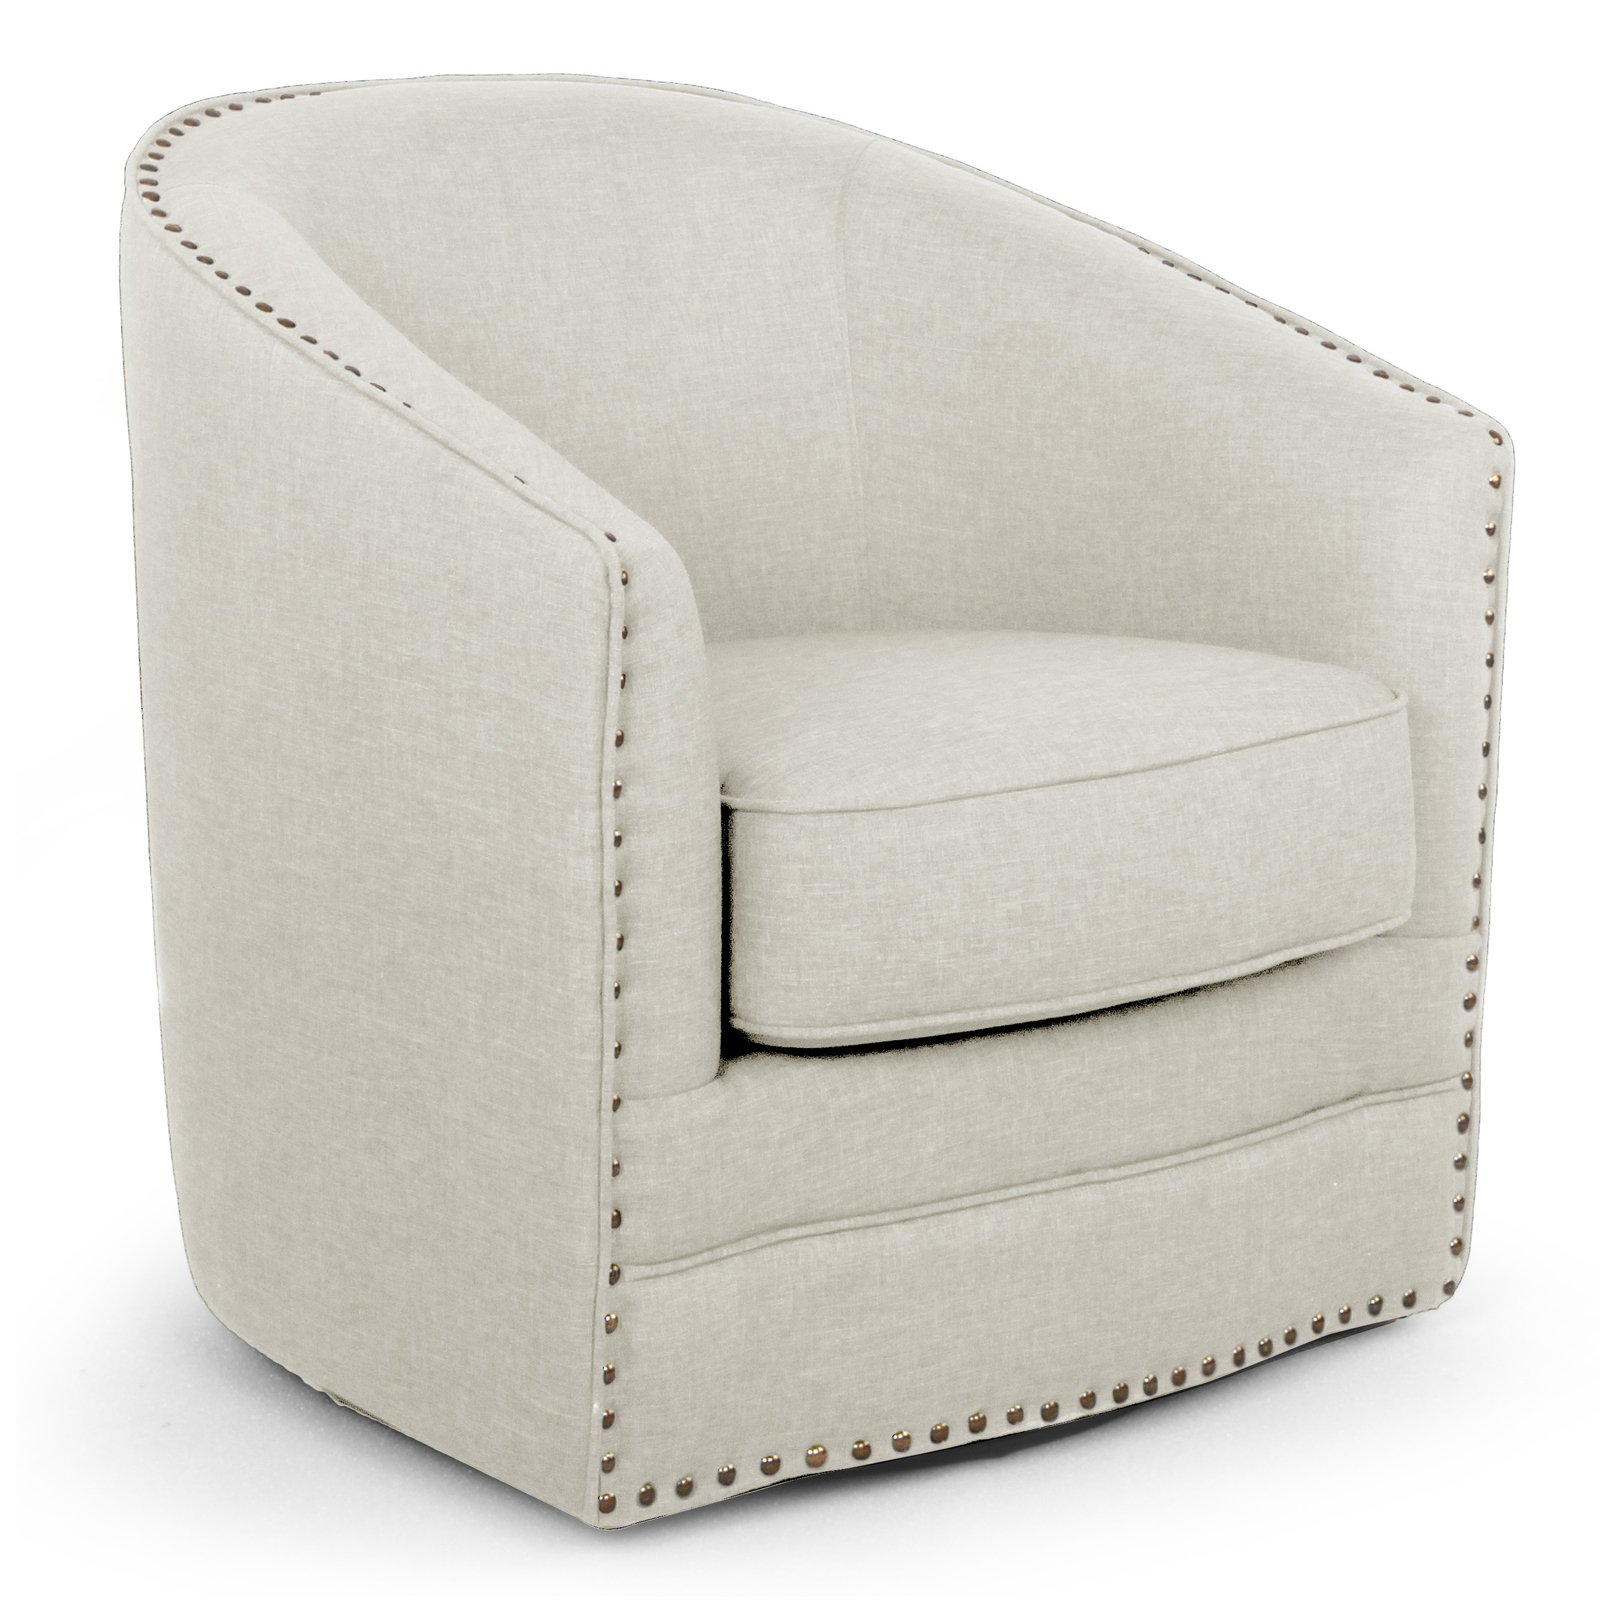 Swivel Tub Chair Baxton Studio Porter Modern And Contemporary Classic Retro Beige Fabric Upholstered Swivel Tub Chair